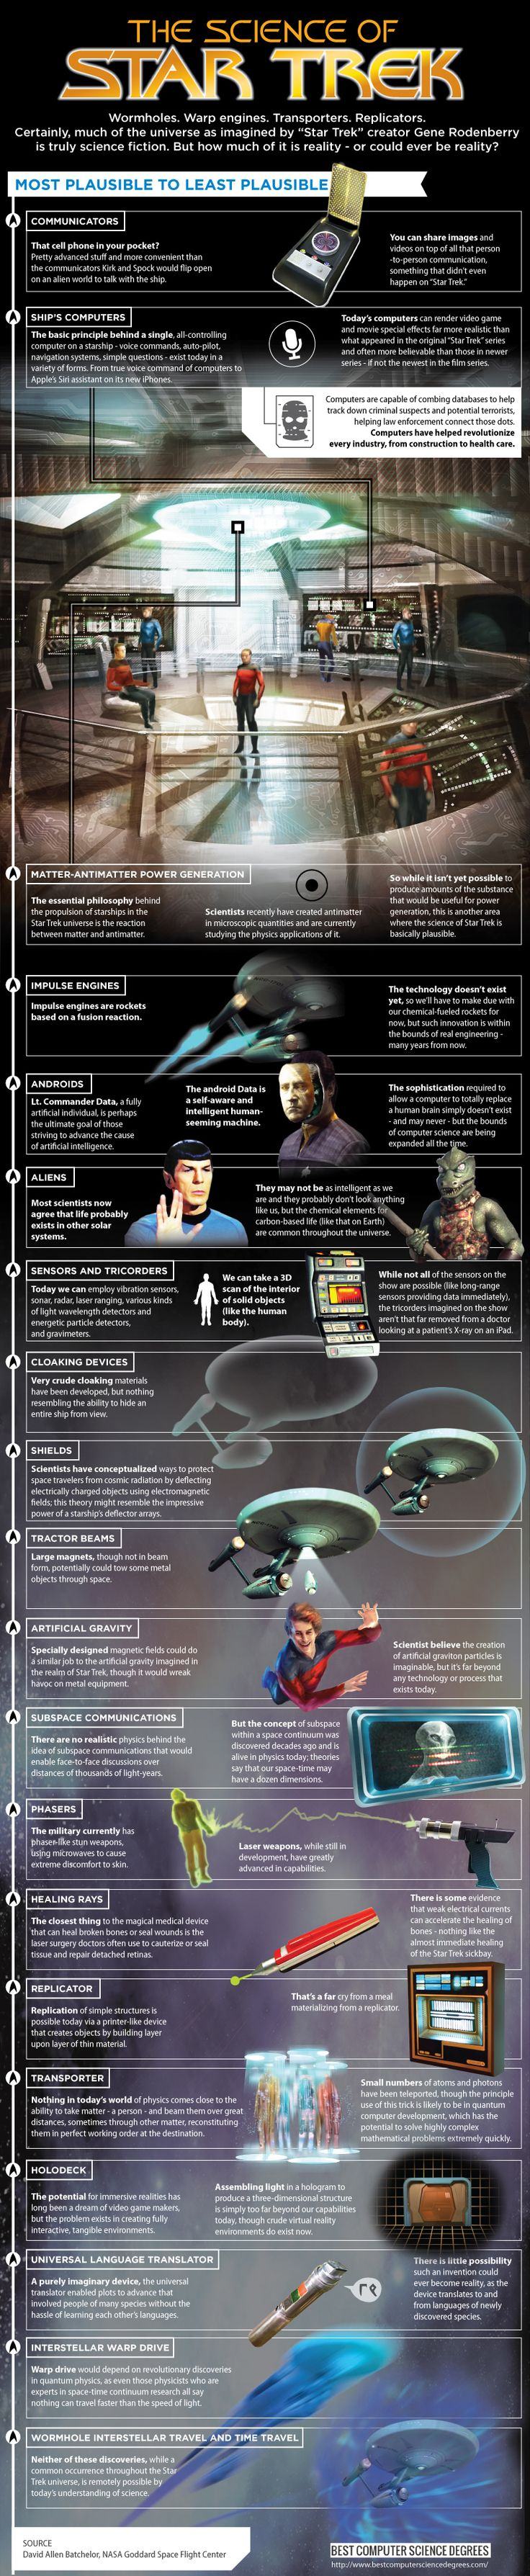 The Science of Star Trek. Doesn't beat the original tech manual that showed that mathematically the Enterprise is going backwards at Warp 1. ;)